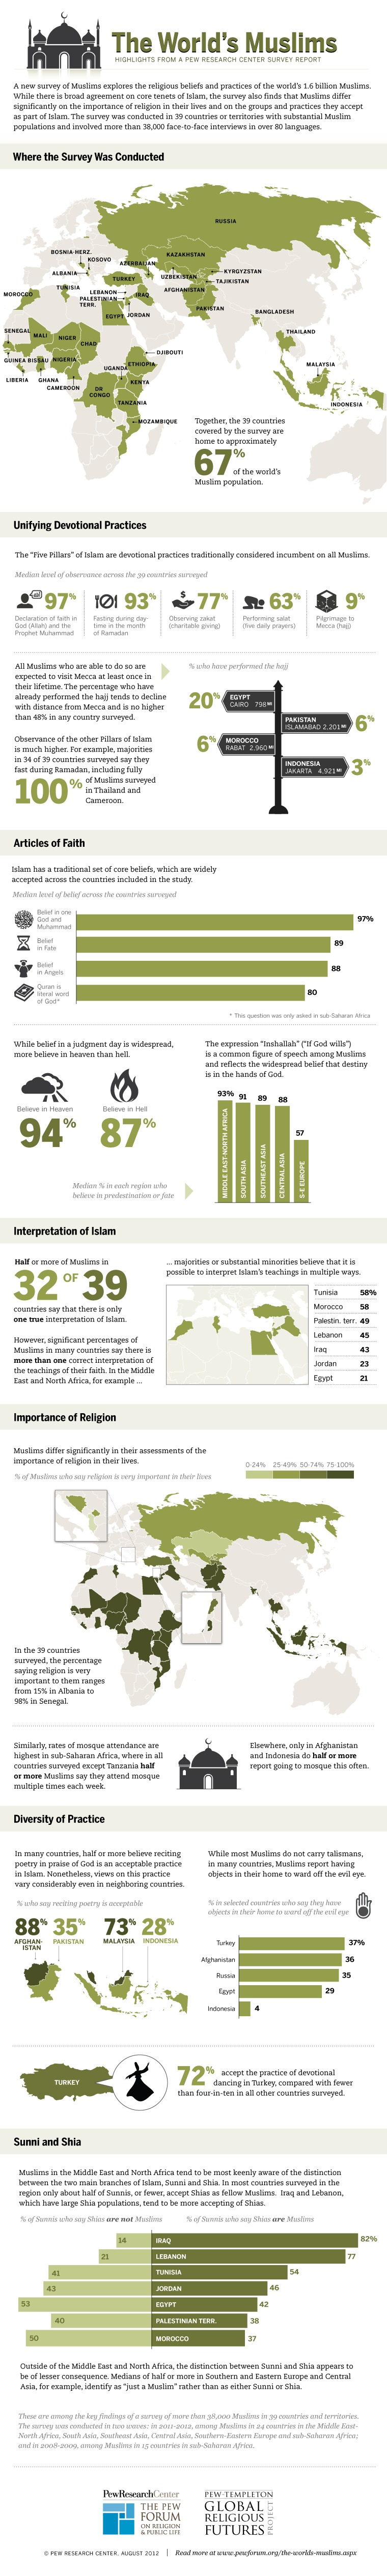 Muslims and Diversity